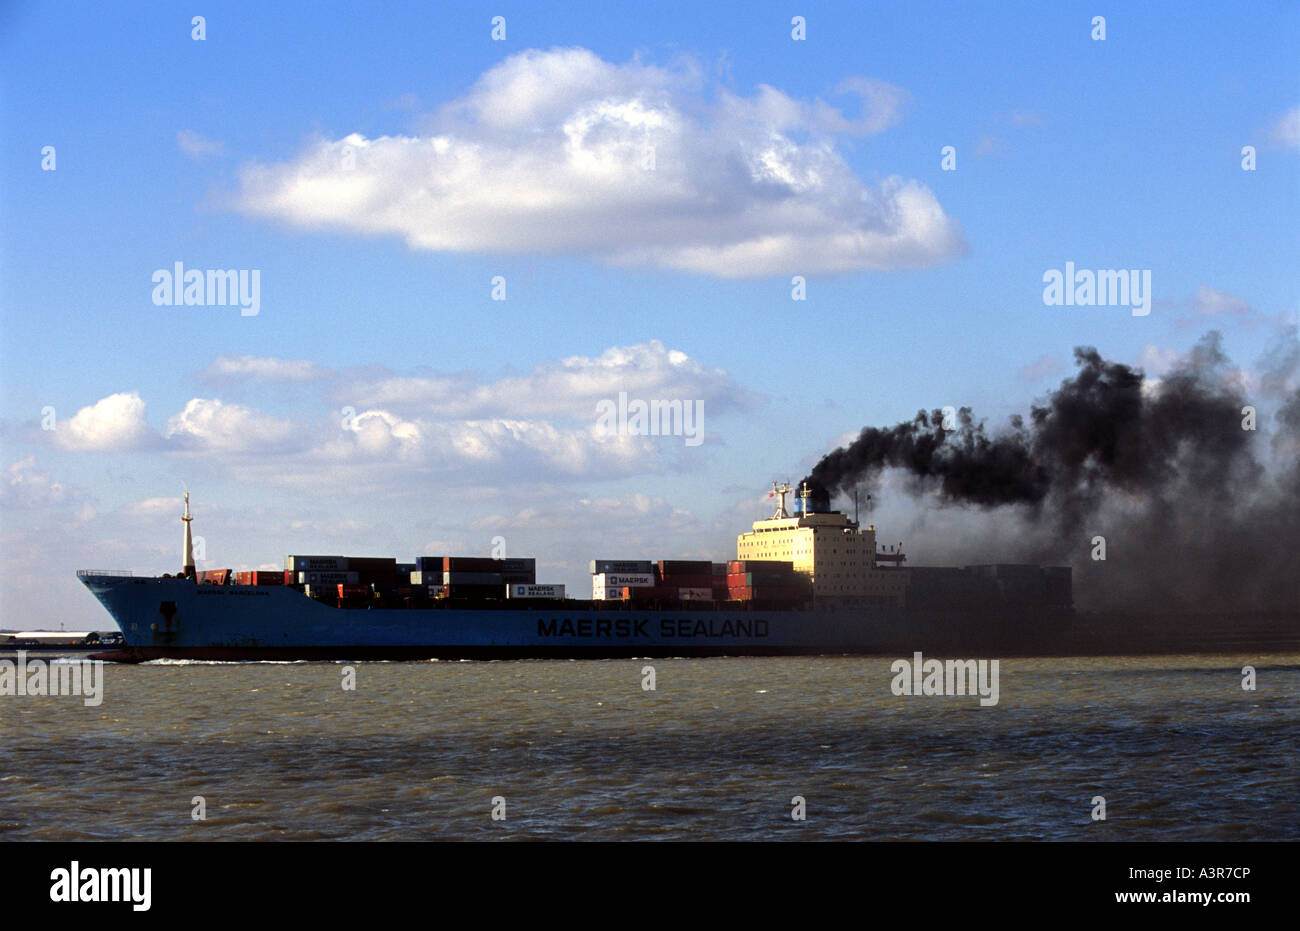 Carbon dioxide emissions from the engines of a container ship leaving the port of Felixstowe, Suffolk, UK. - Stock Image